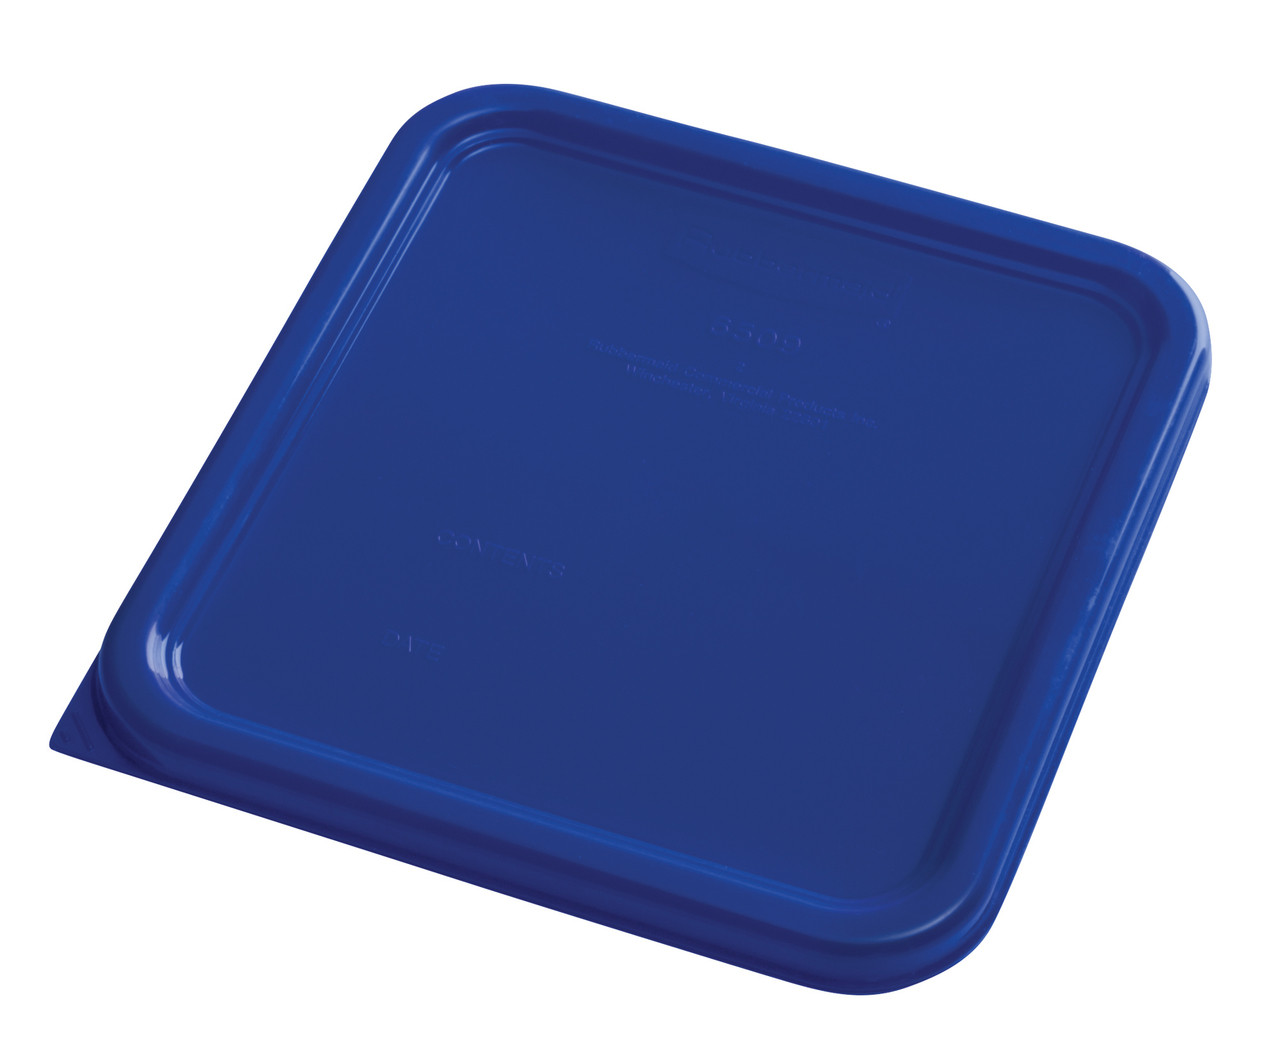 Rubbermaid Square Container Lid - Small Blue